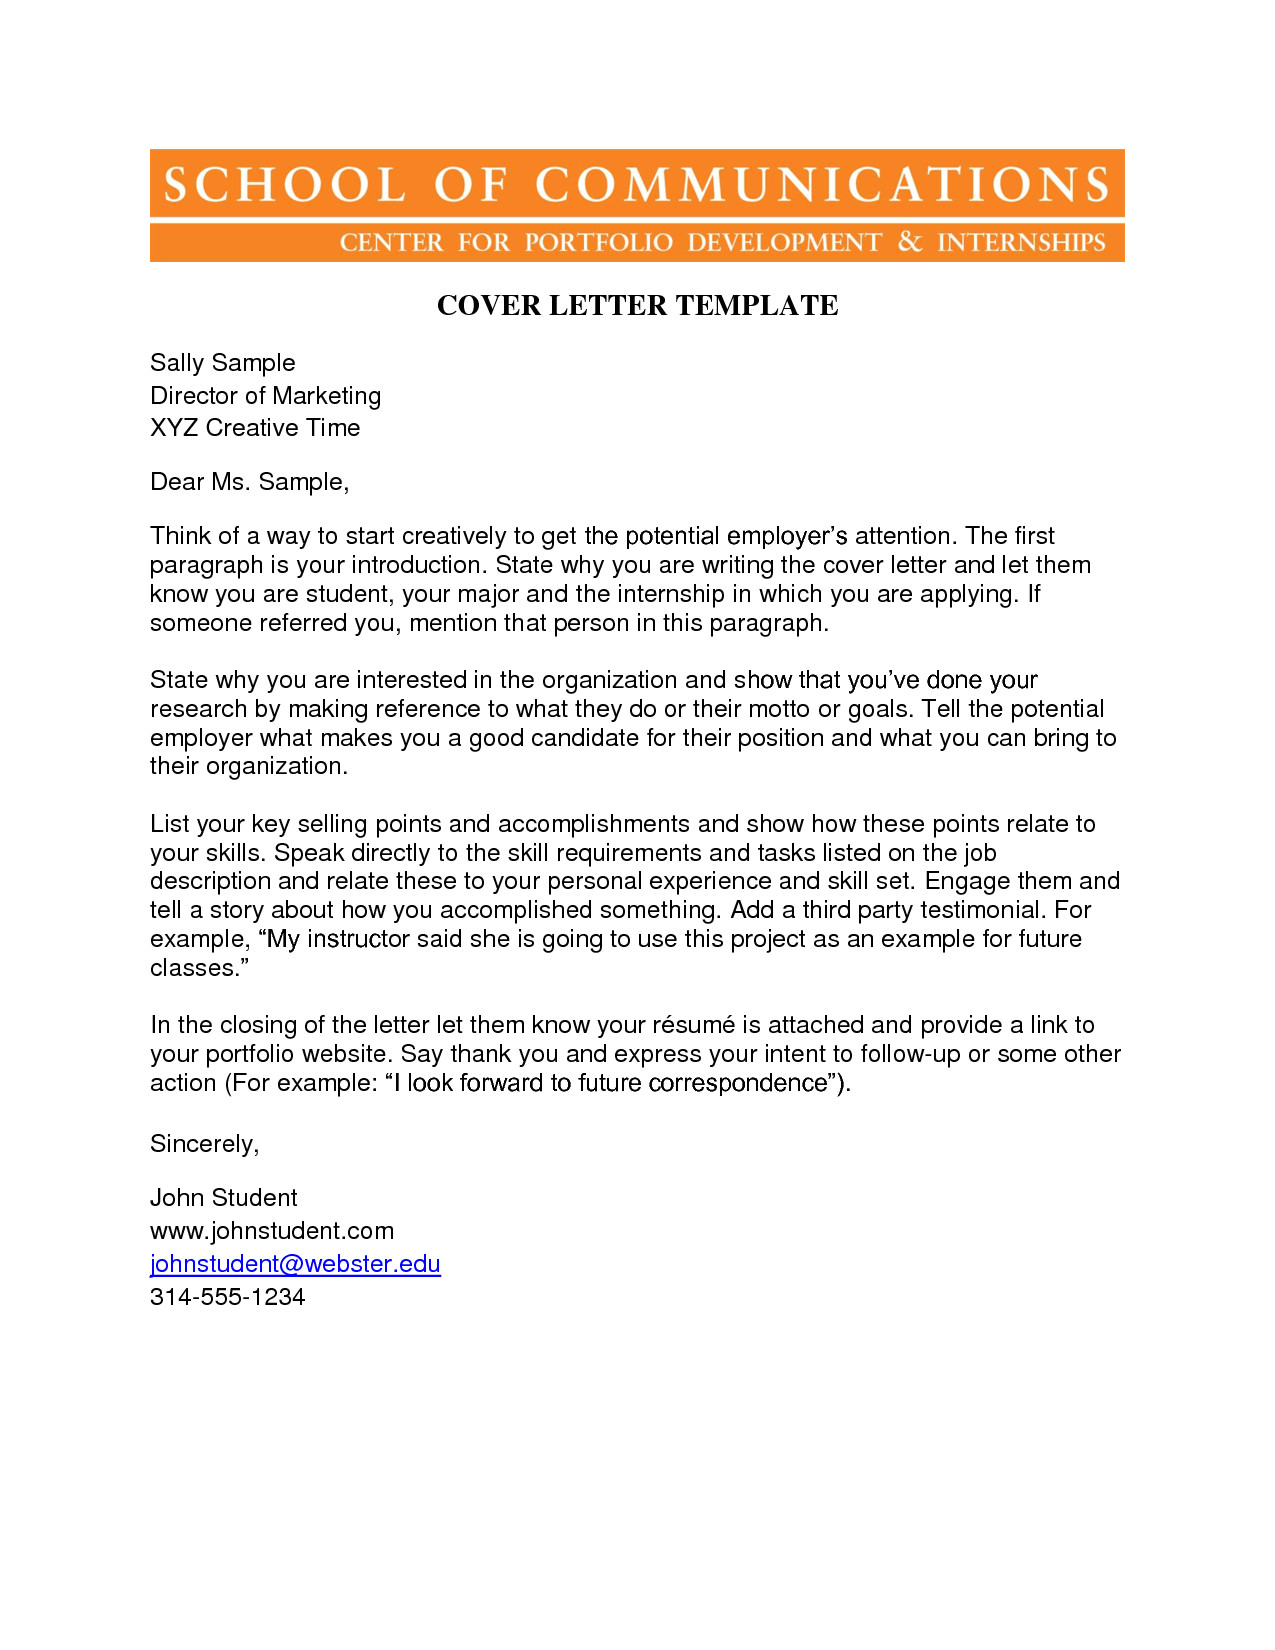 how to write a unique cover letter